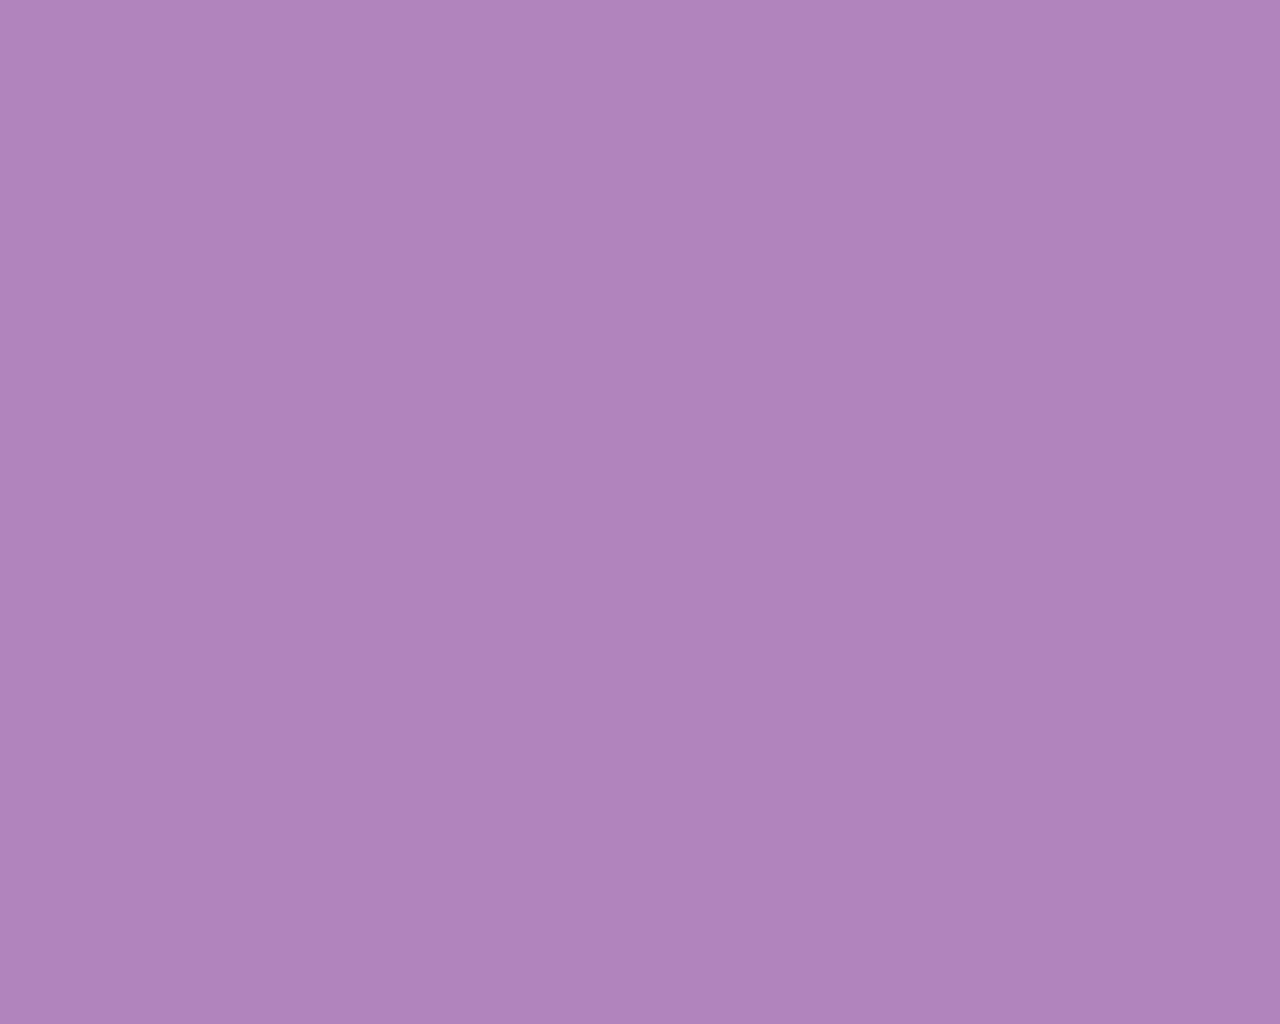 1280x1024 African Violet Solid Color Background